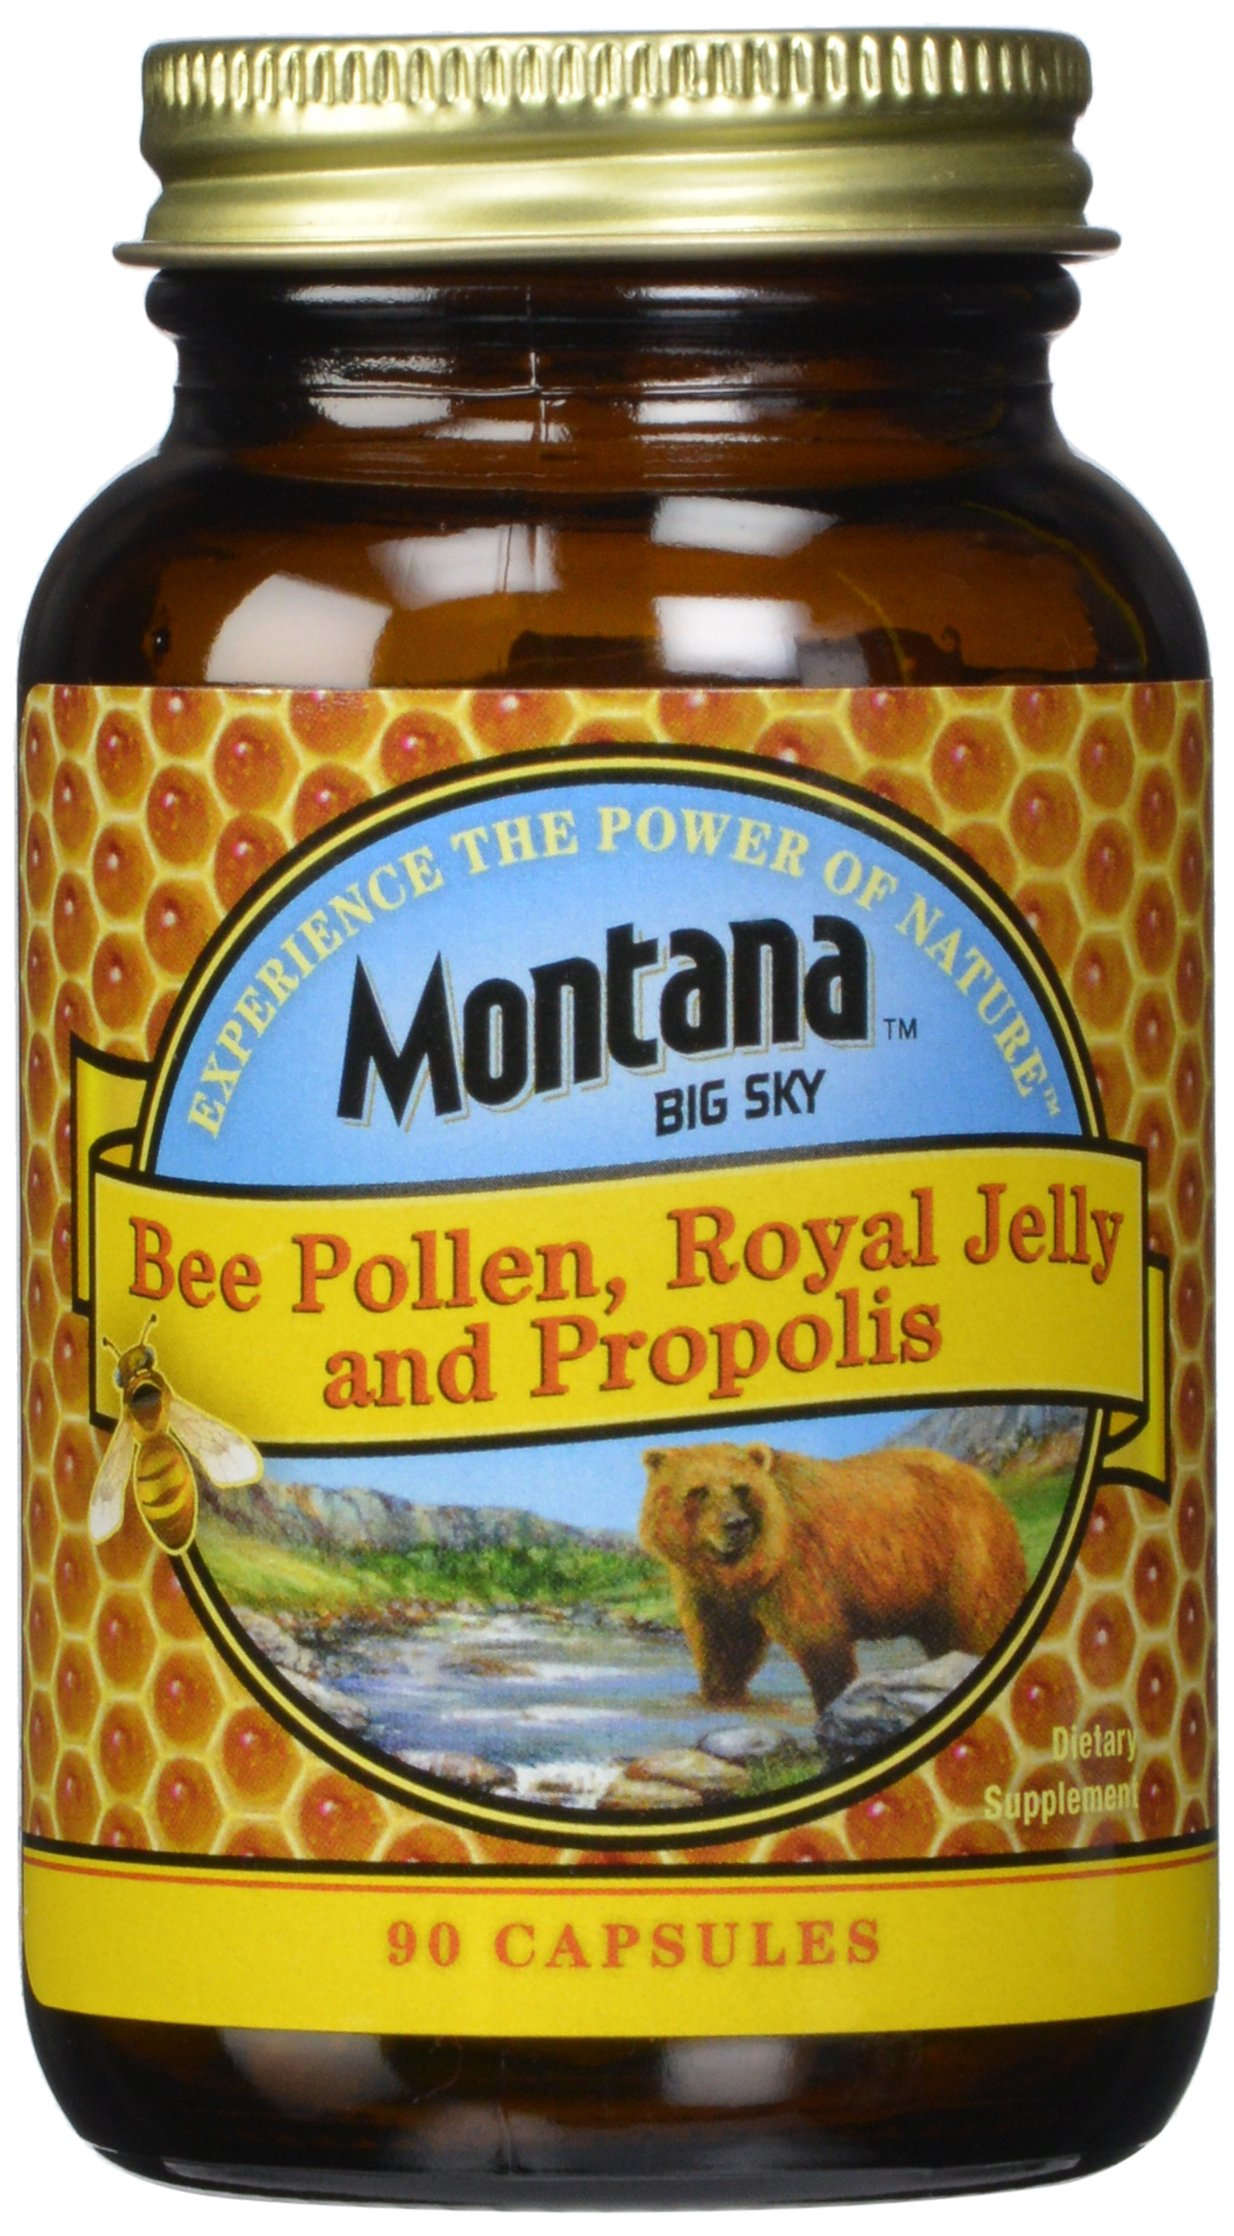 Montana Big Sky, Bee Pollen Royal Jelly and Propolis Capsules, 90 count (Pack of 12)